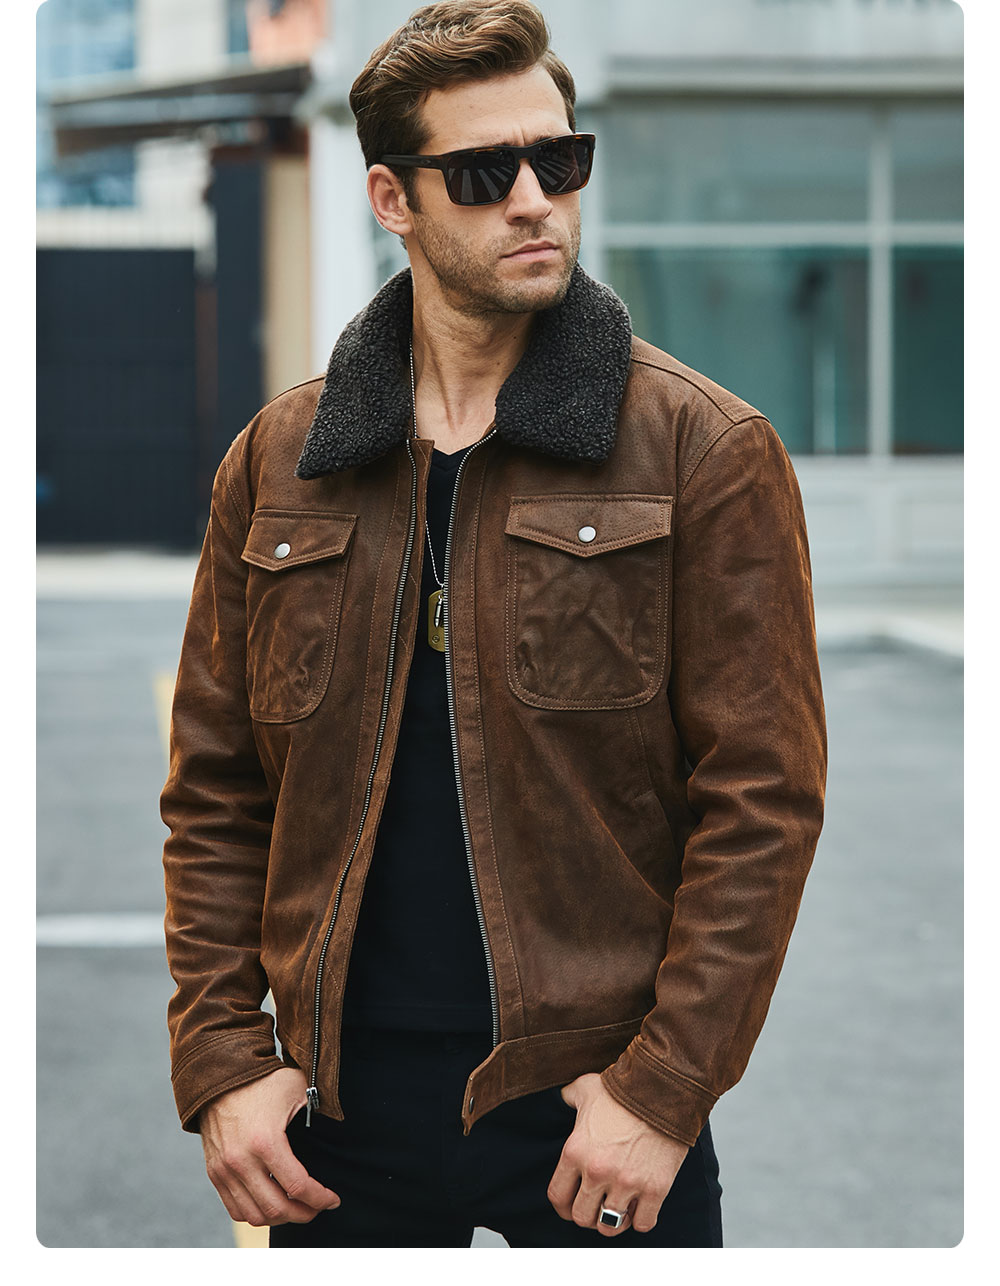 H305bfec4856b4fcd97acbd460fdd4d81d FLAVOR Men's Real Leather Jacket Genuine Leather jacket with faux fur collar male Motorcycle warm coat Genuine Leather Jacket